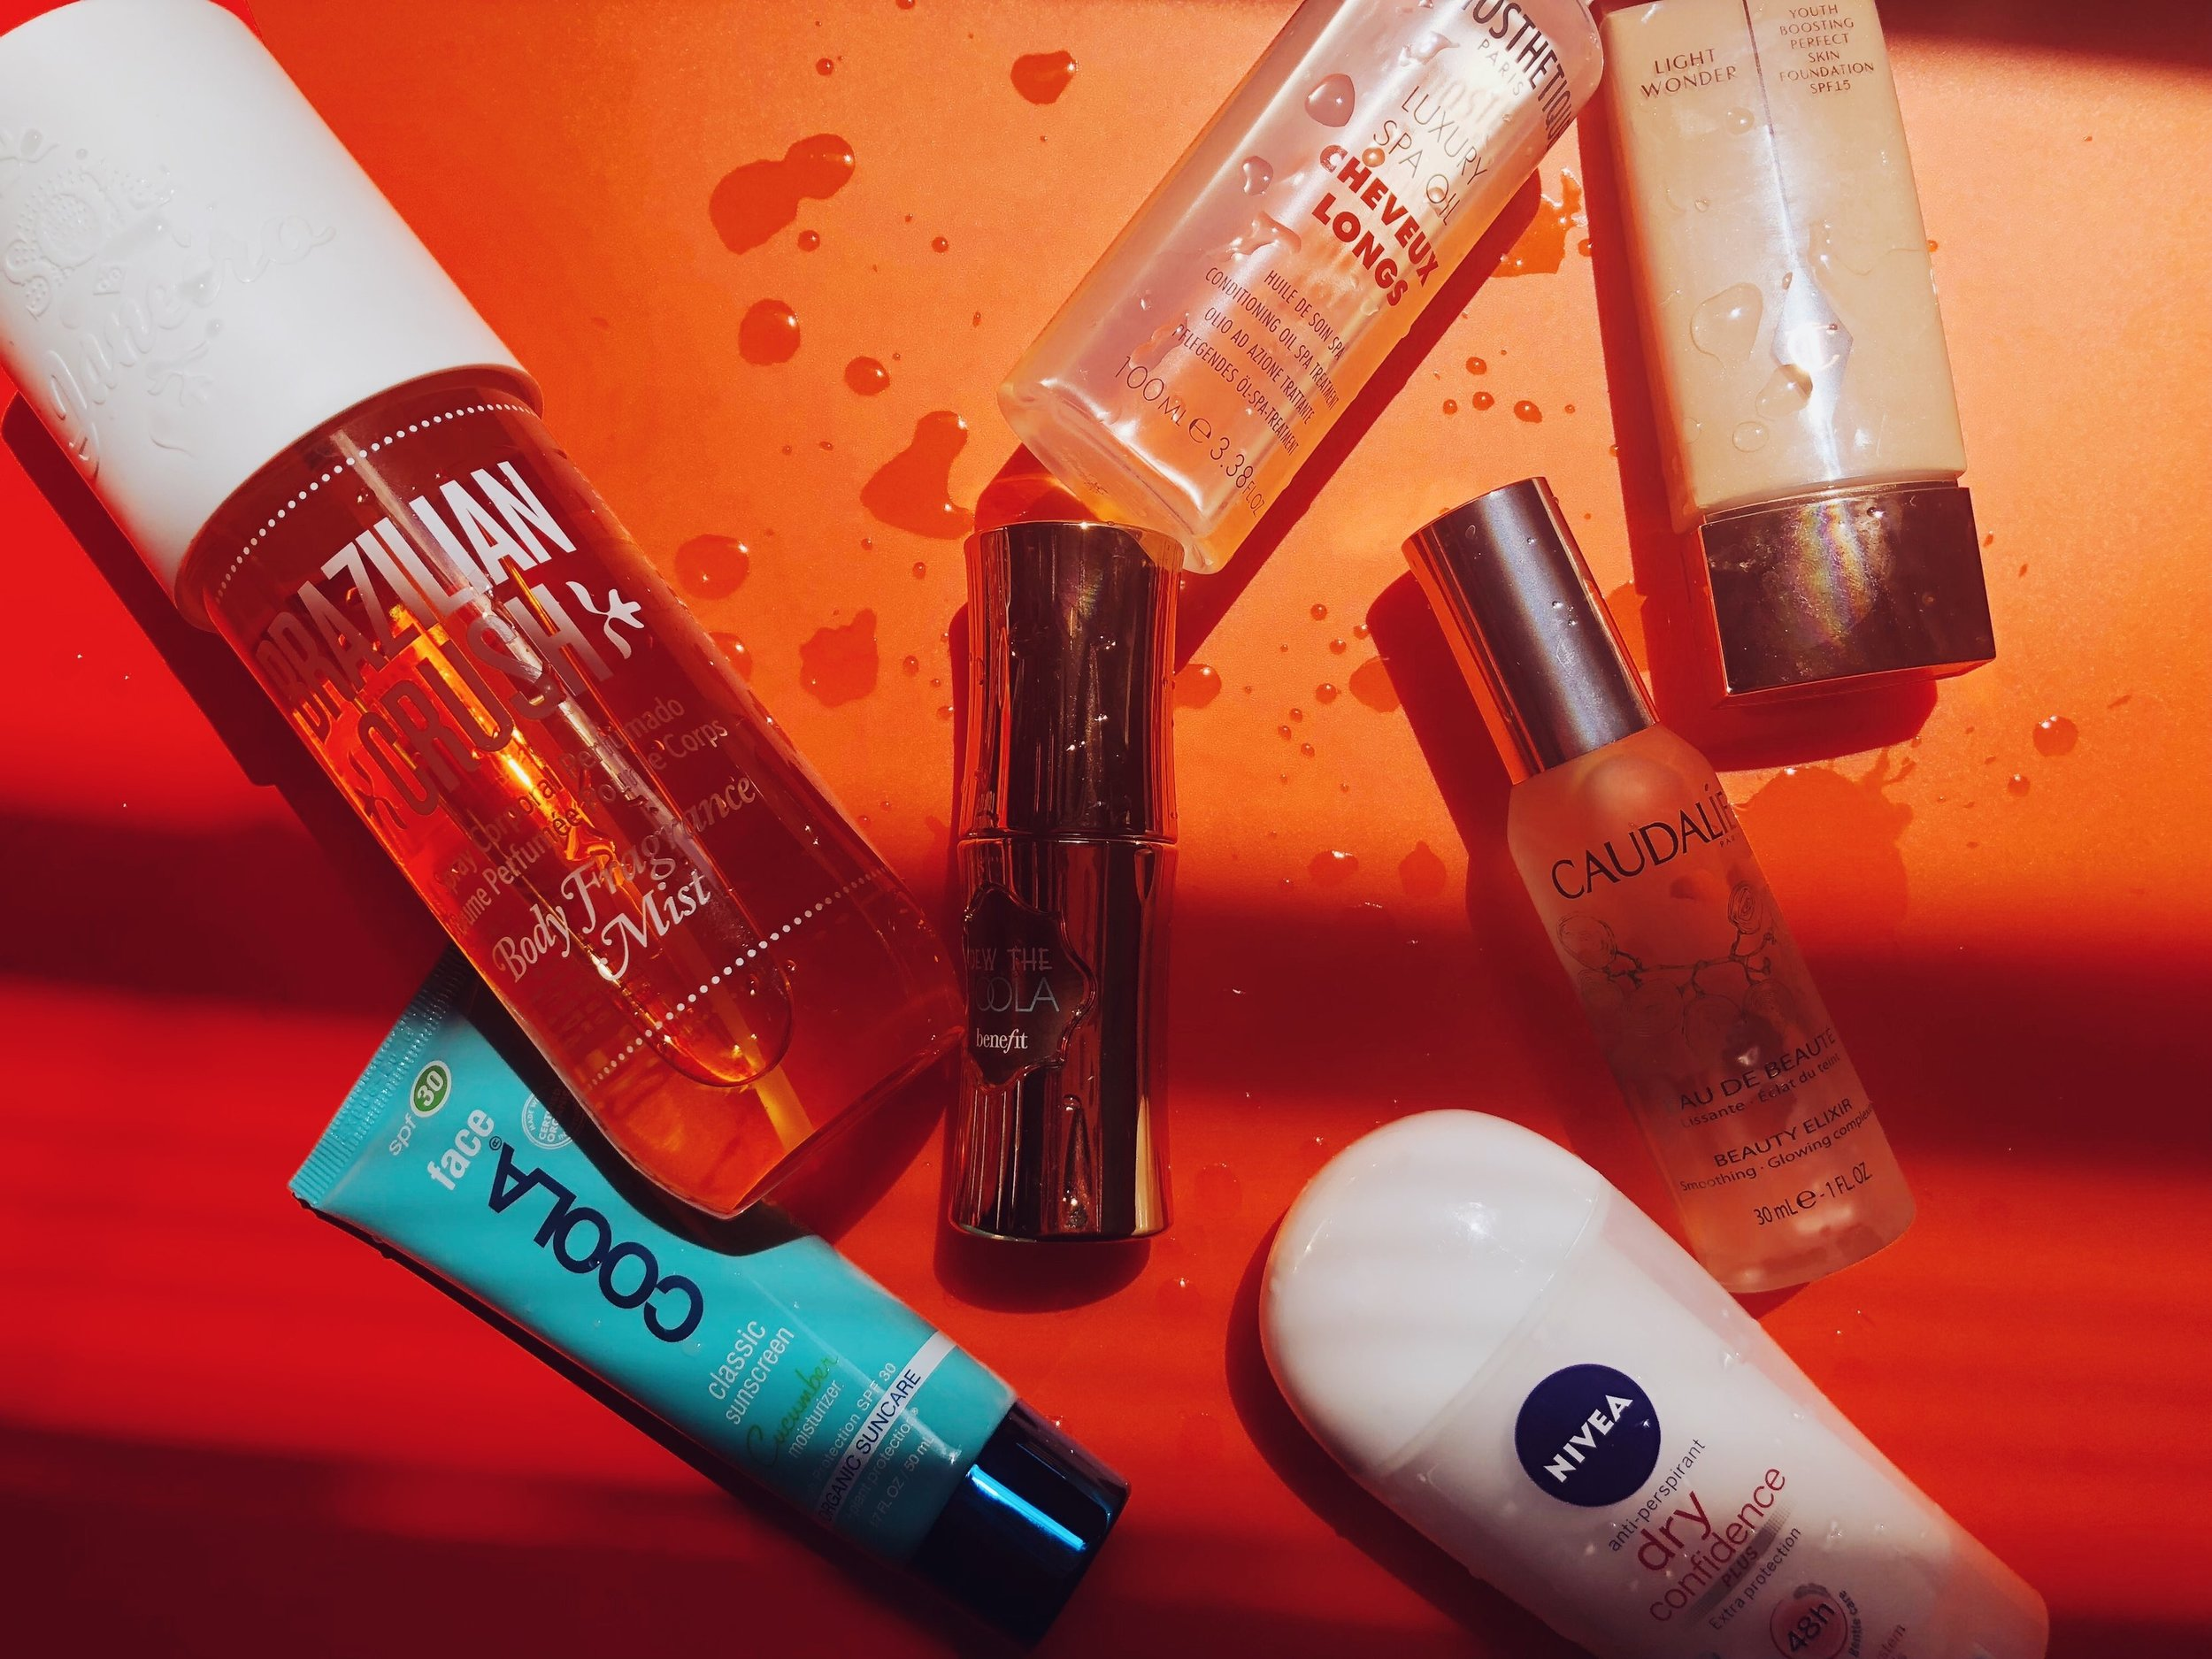 DON'T SWEAT IT - ALL YOU NEED OT STAY COOL (AND LOOK BOMB) DURING THE HOT MONTHS - A SUNSCREEN, A FACE MIST, A BODY SPRAY AND MANY MORE OF OUR SUMMER FAVS.